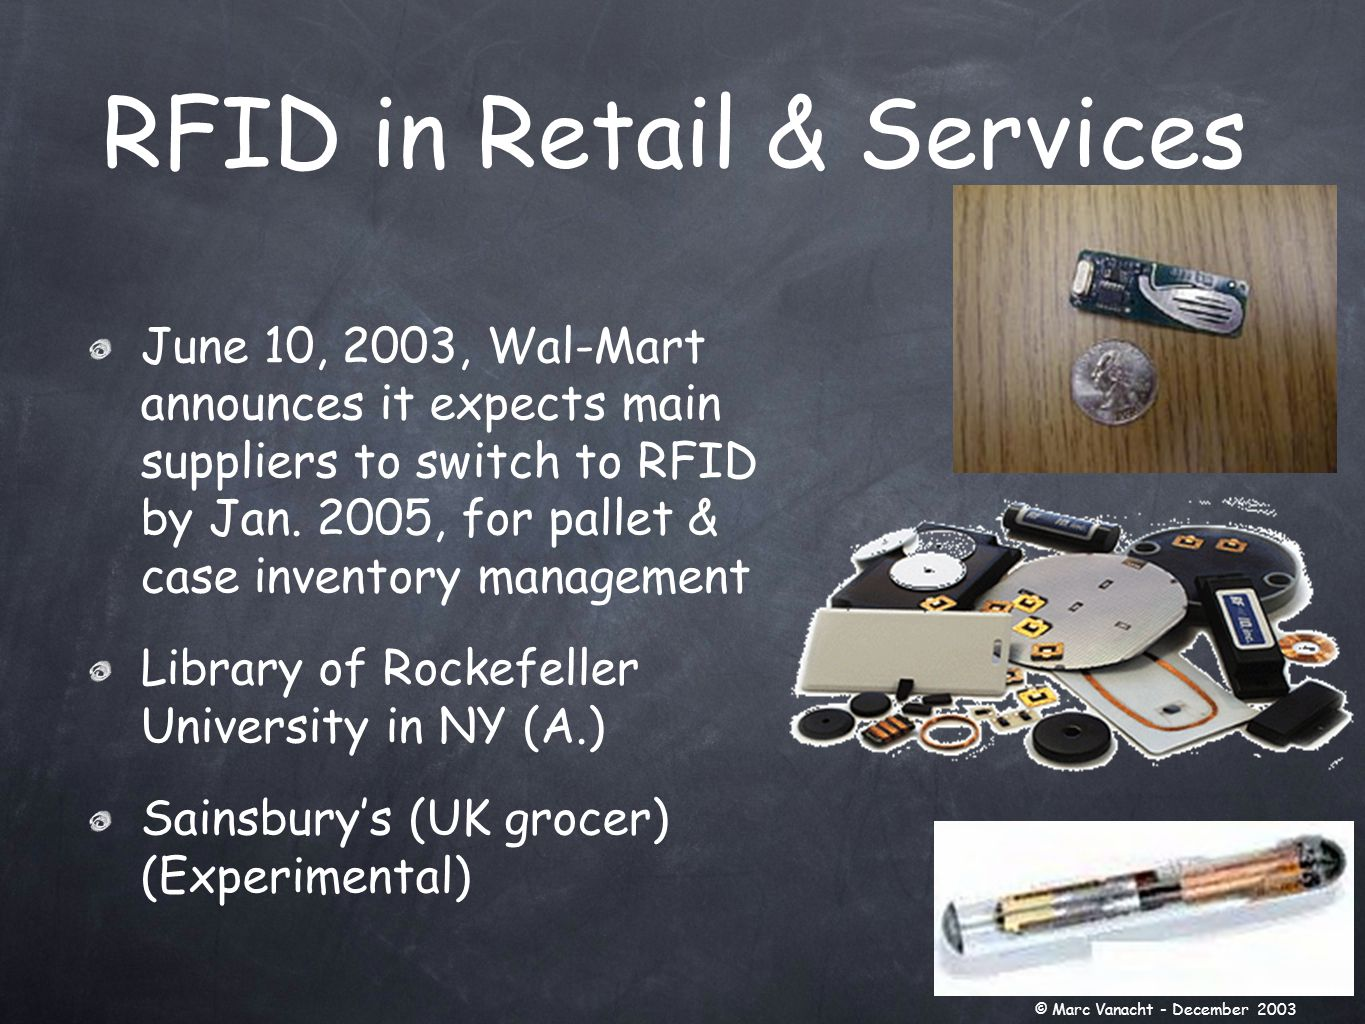 June 10, 2003, Wal-Mart announces it expects main suppliers to switch to RFID by Jan.